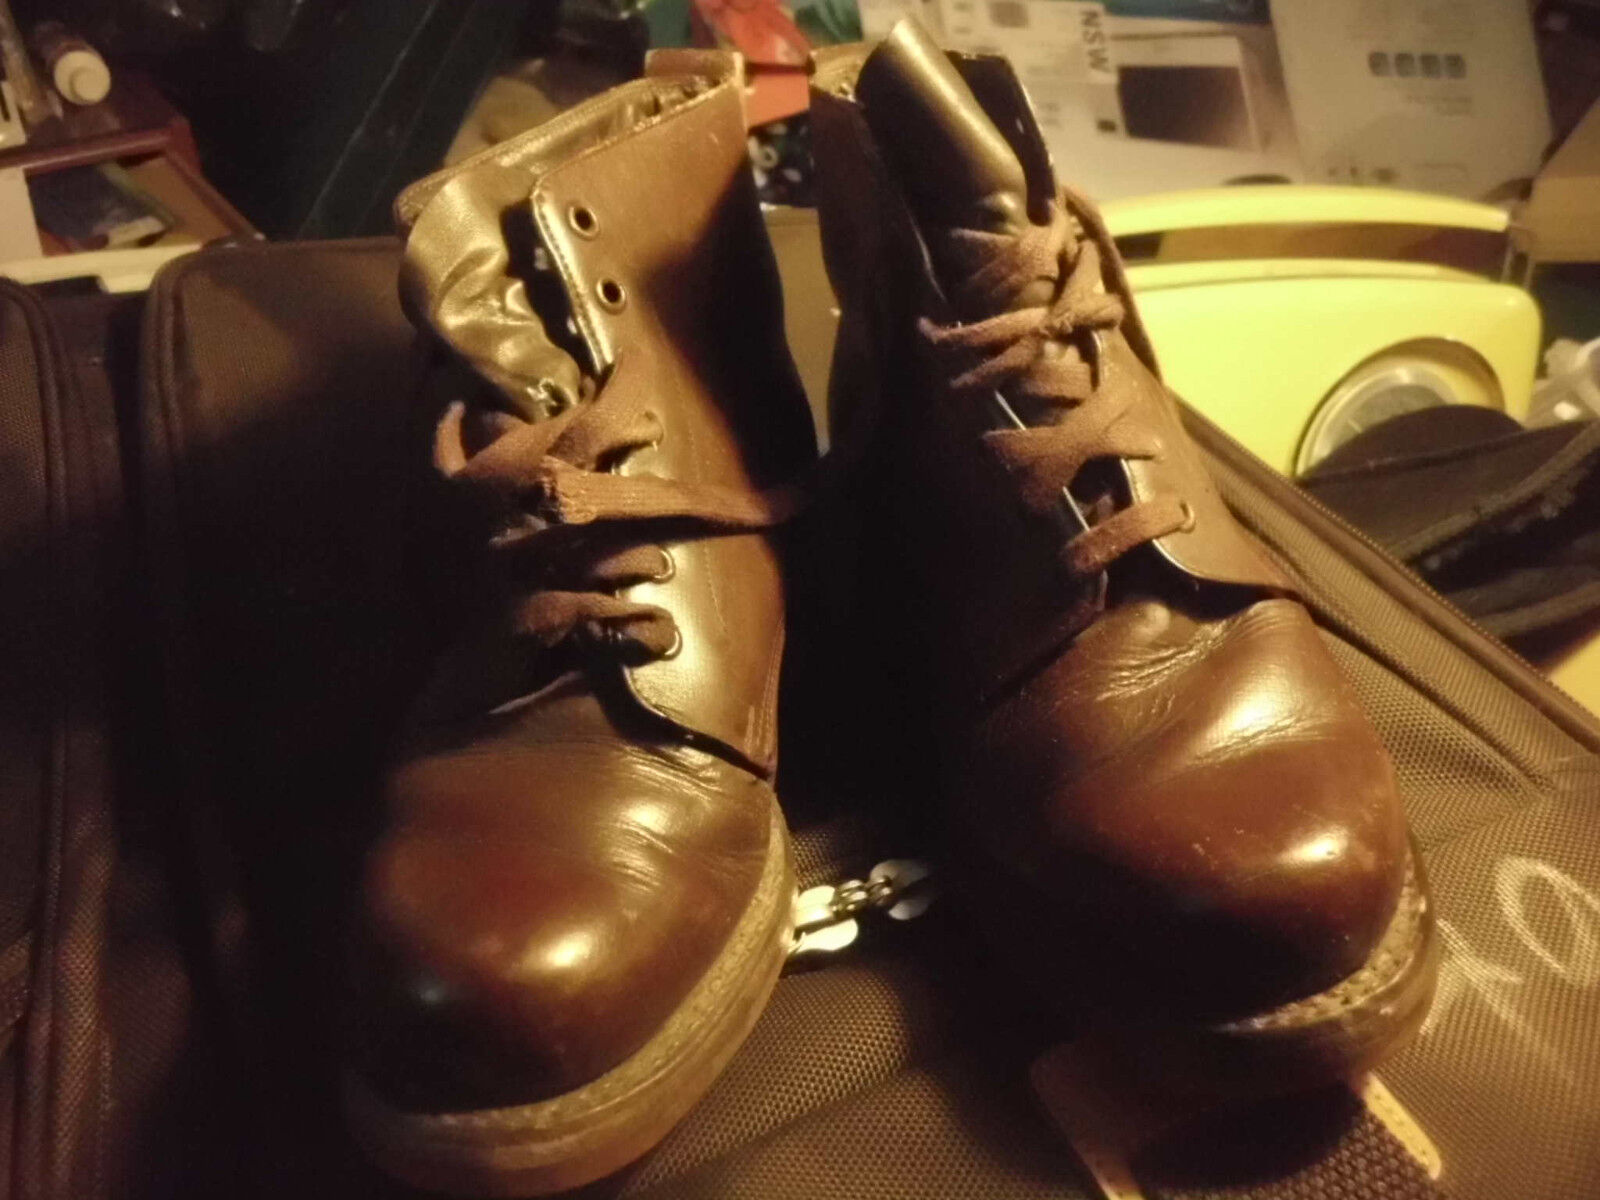 LADIES SIZE Stiefel AMERICAN SHOE FACTORY SIZE LADIES 5.5 STEAMPUNK GOTH 44dc79